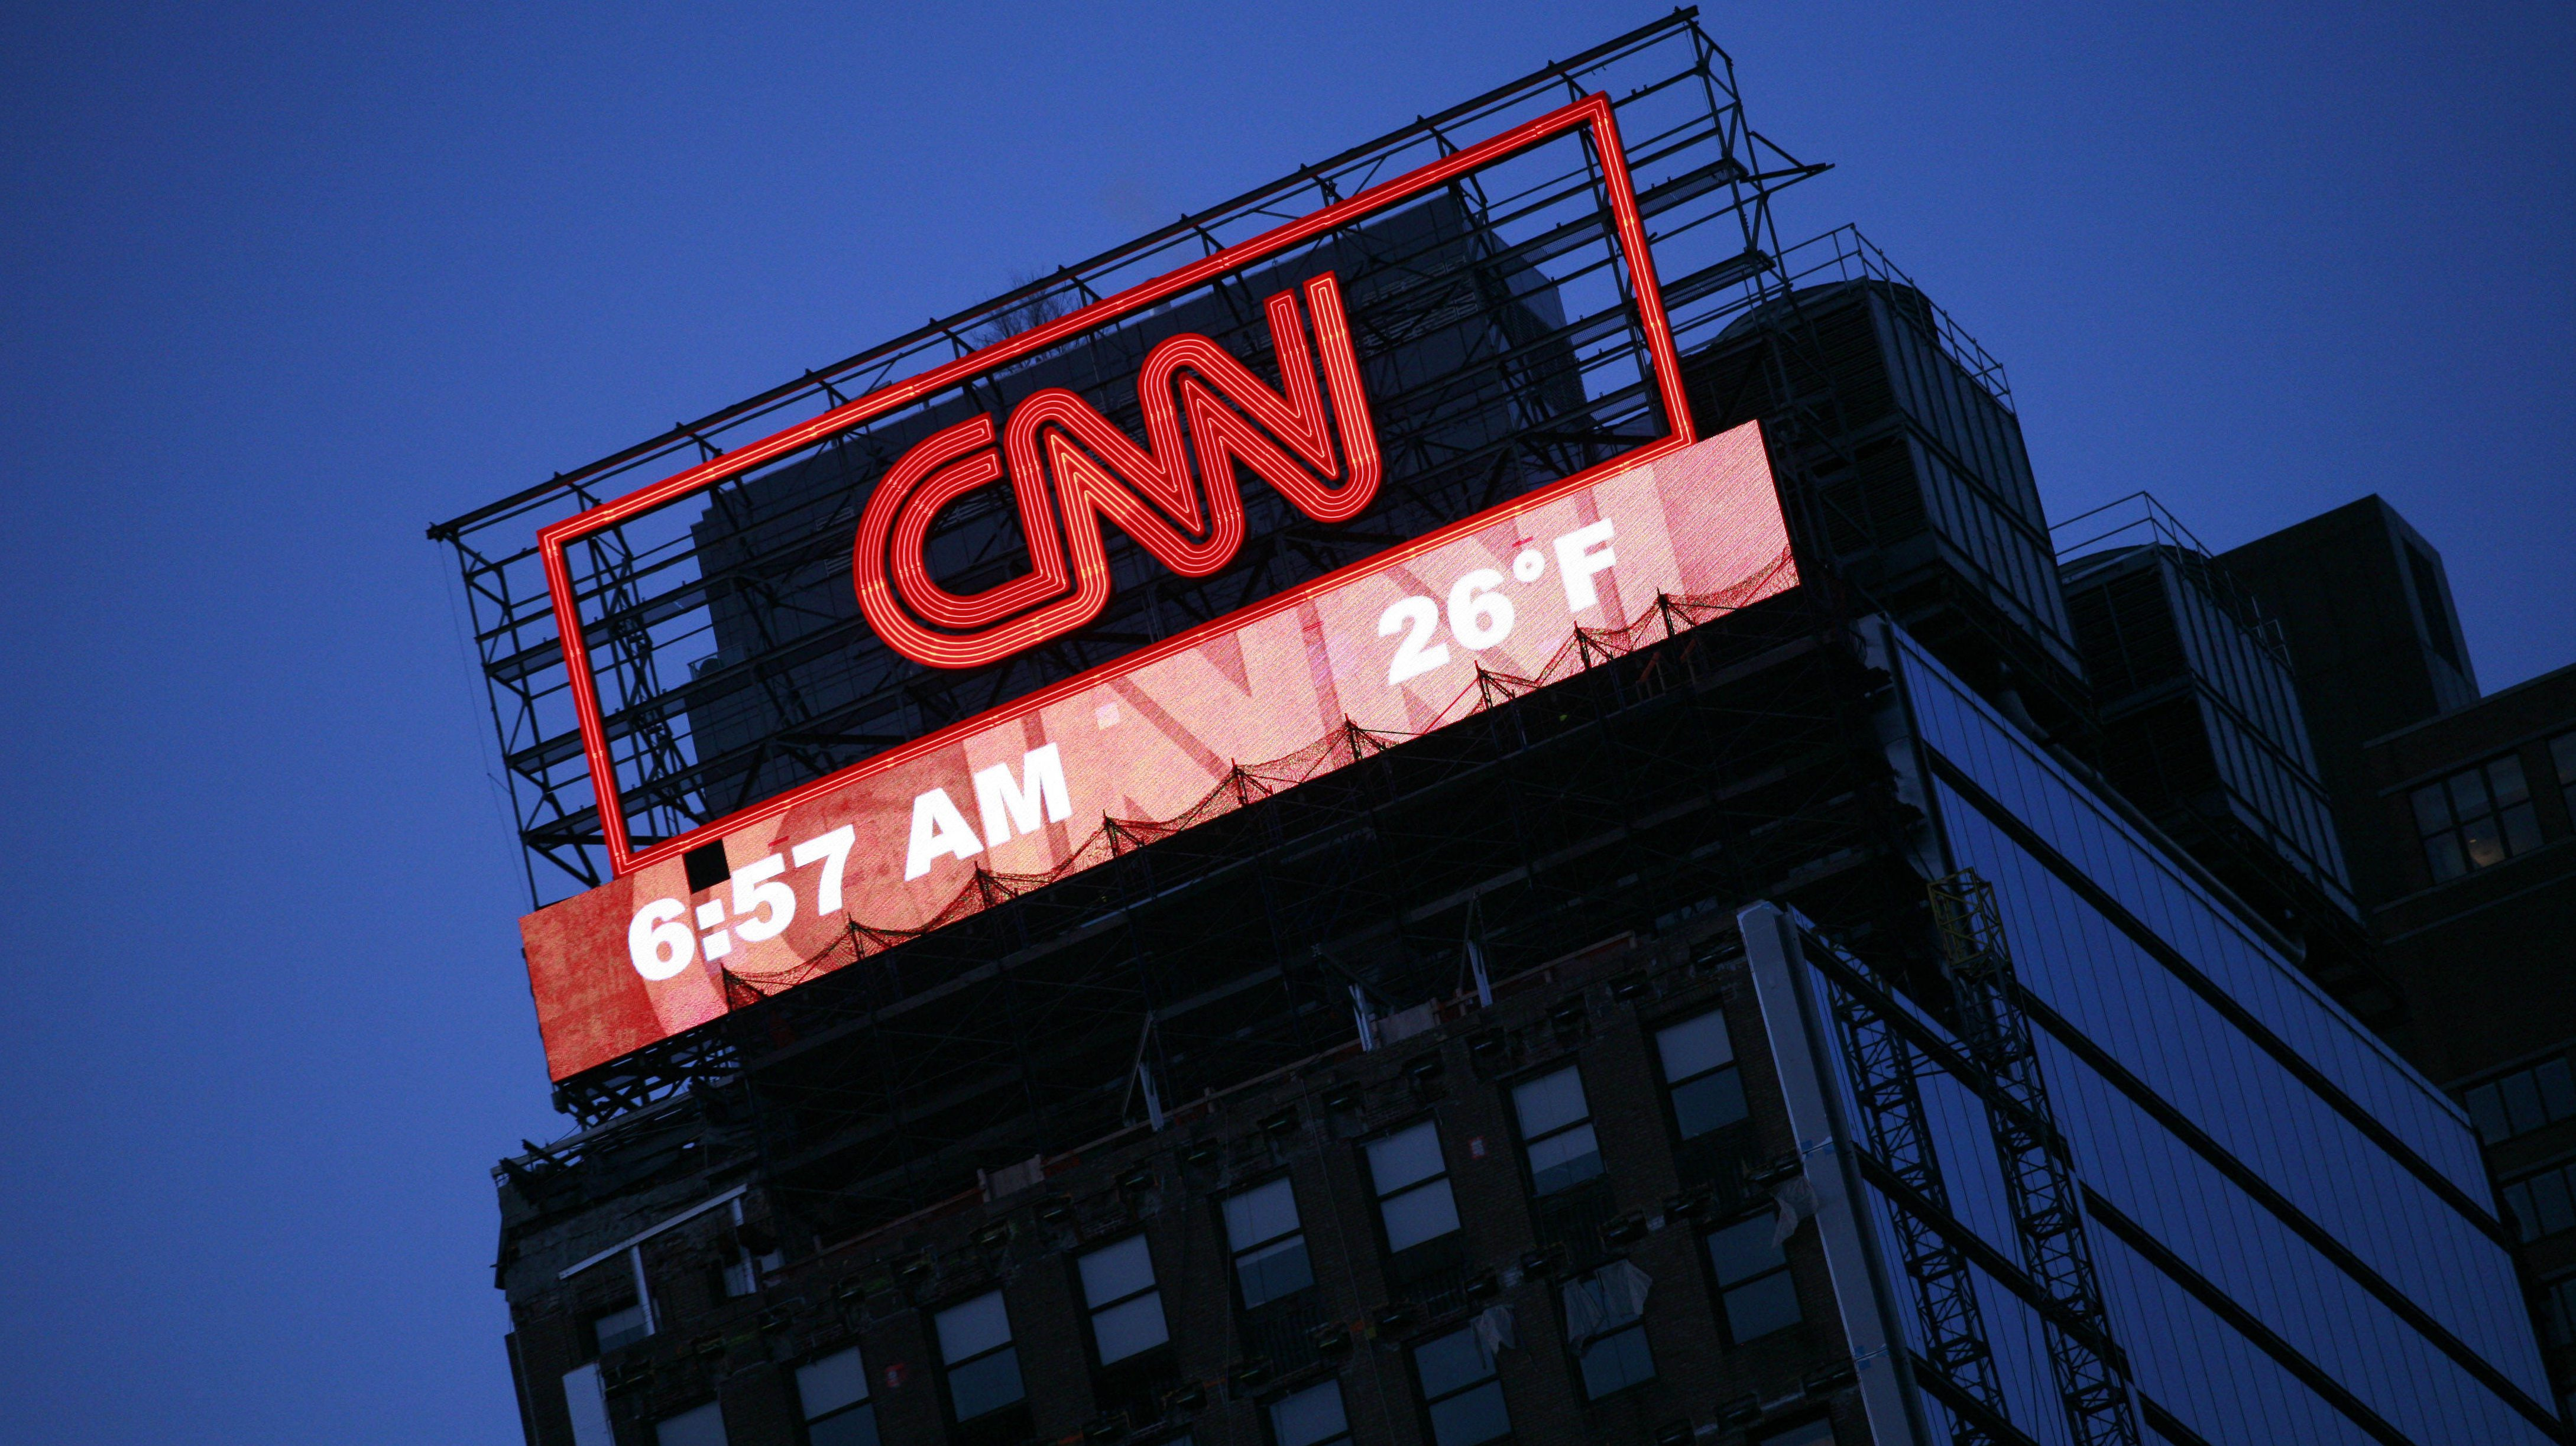 A billboard for CNN is shown Monday, Feb. 1, 2010 in New York. Time Warner, which owns CNN, says it reversed its losses in the fourth quarter, as its cable channels and movie studio boosted revenue. (AP Photo/Mark Lennihan)